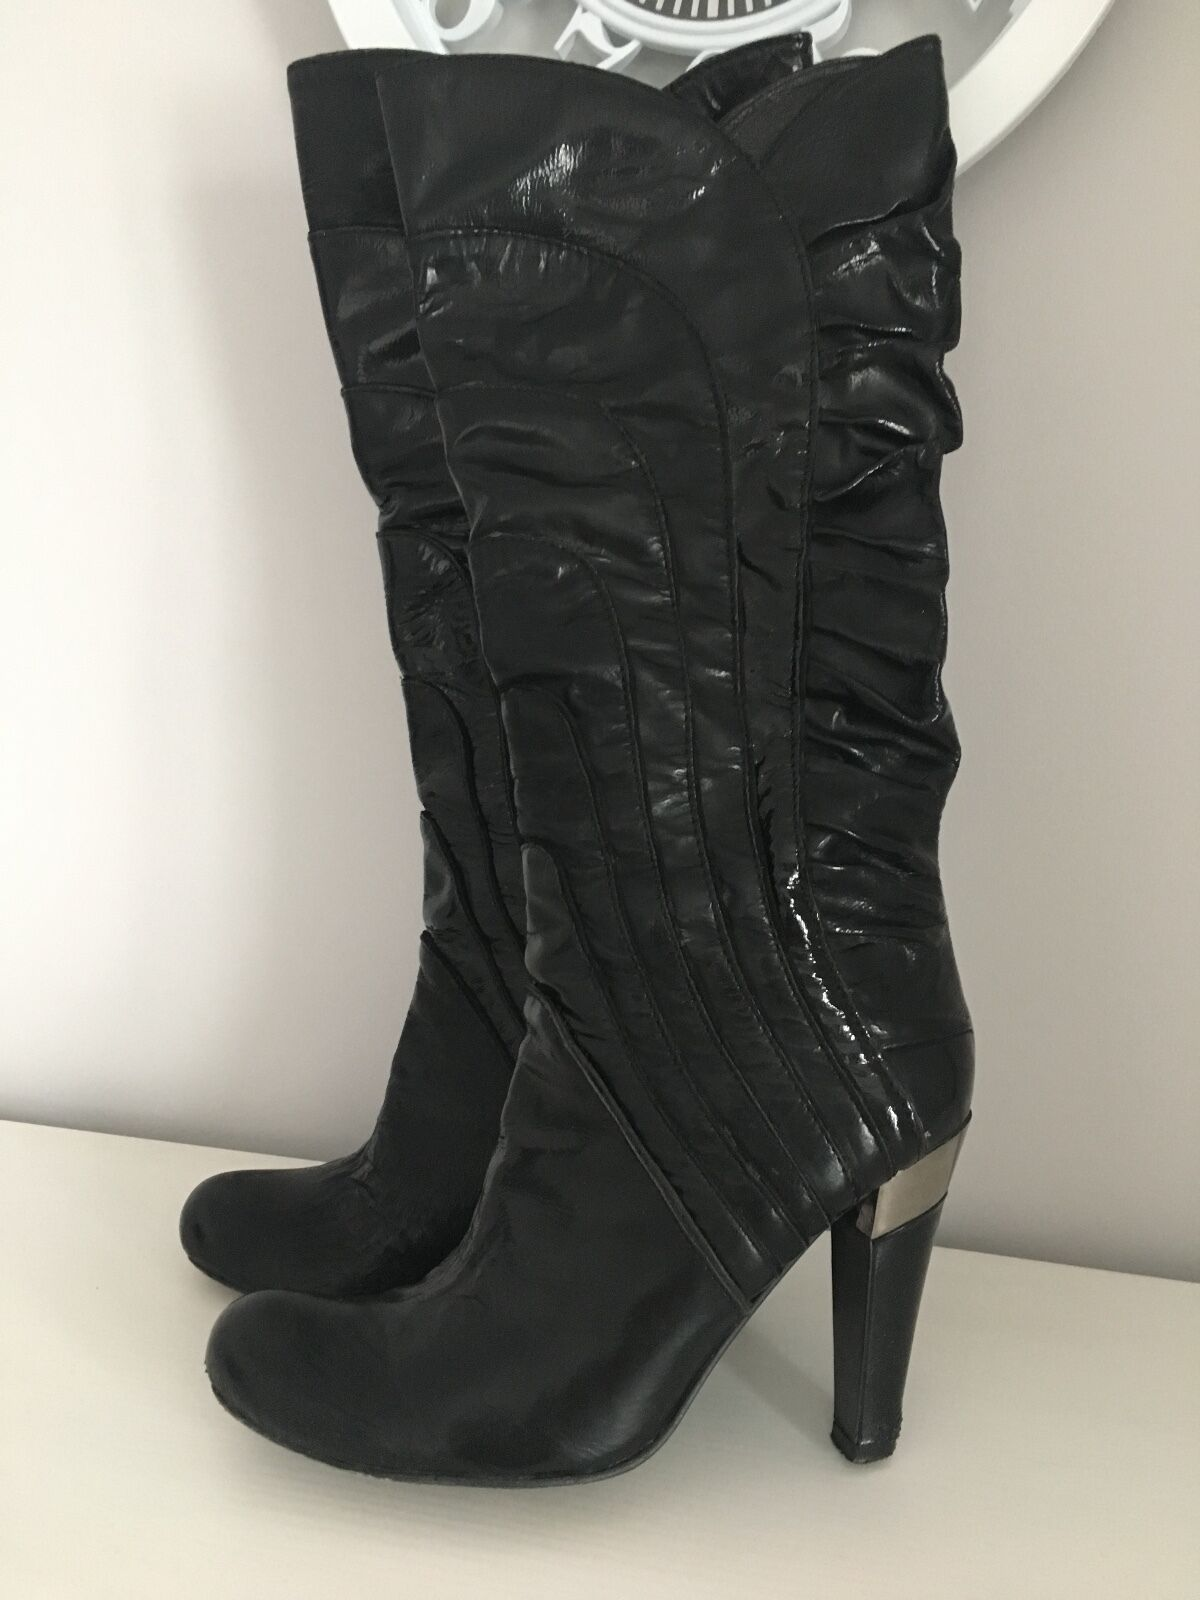 ALDO  38 GOOD CONDITION LEATHER BOOTS 250